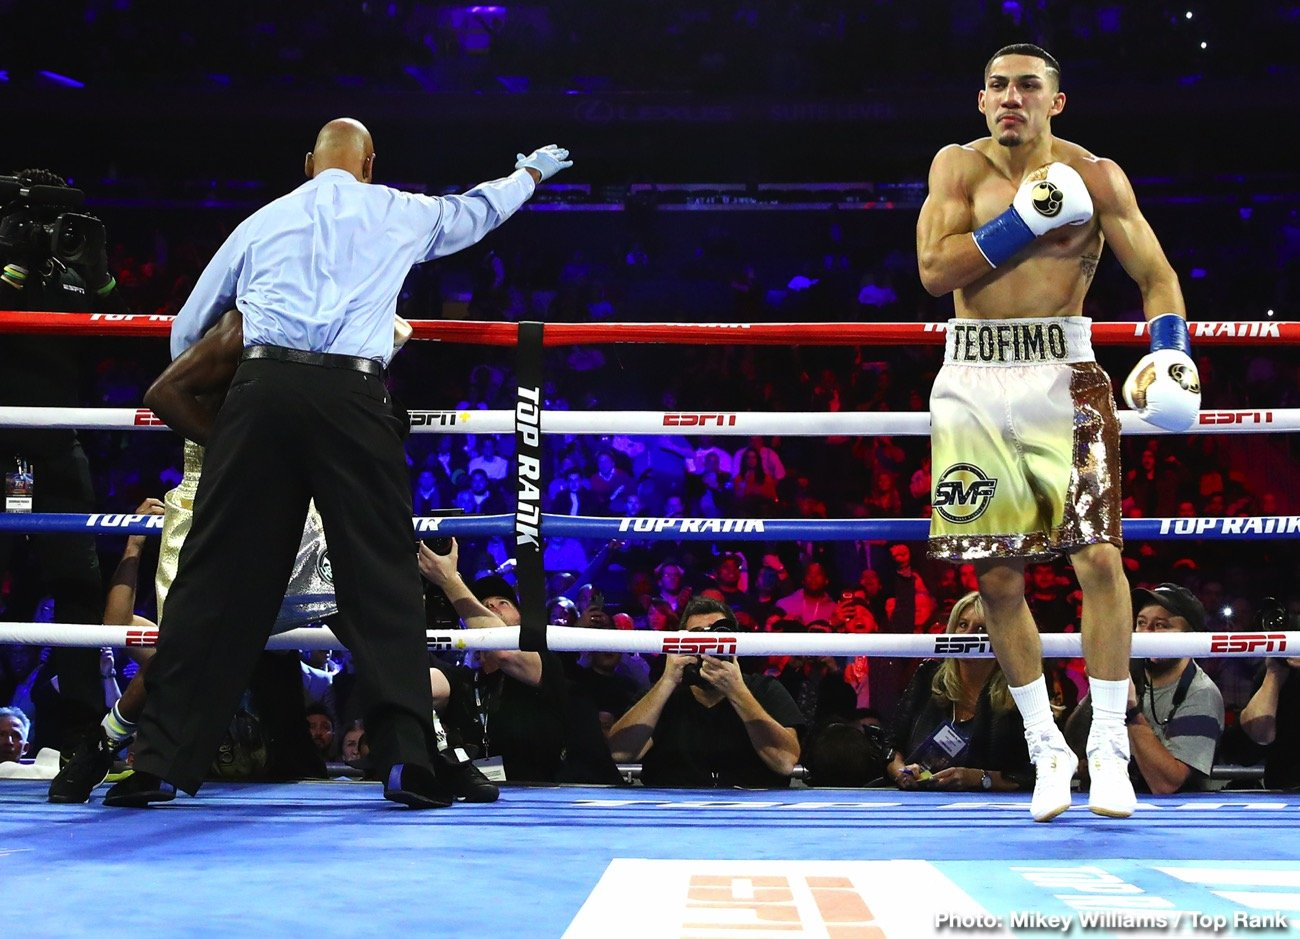 Teofimo Lopez, Vasily Lomachenko - Teofimo Lopez is in a position where he has to decide whether to chase greatness or focus on getting the biggest paycheck possible for his lightweight unification match against Vasily Lomachenko.